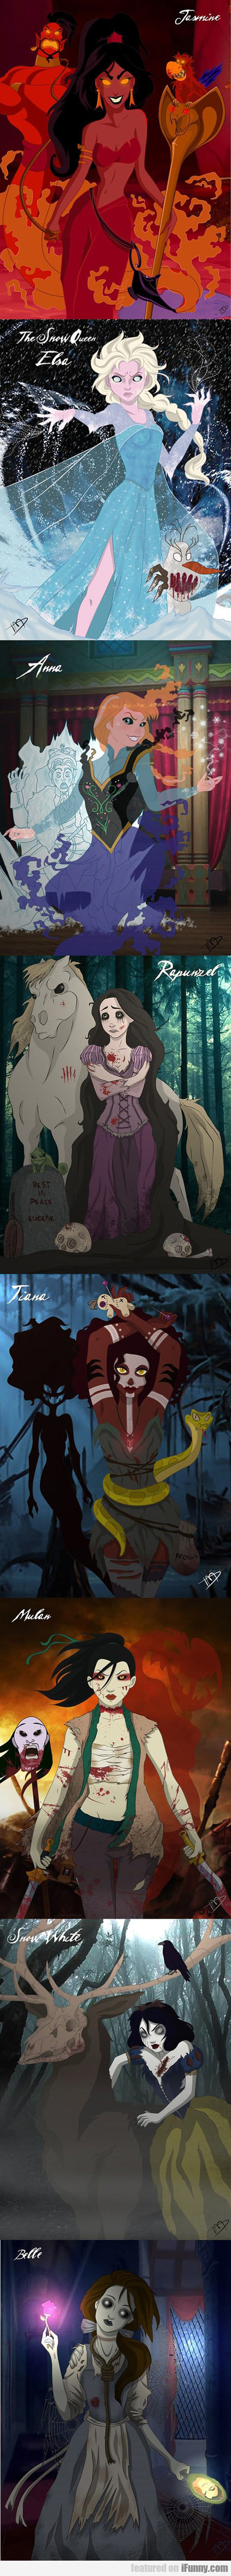 Creepy Zombie Disney Princesses